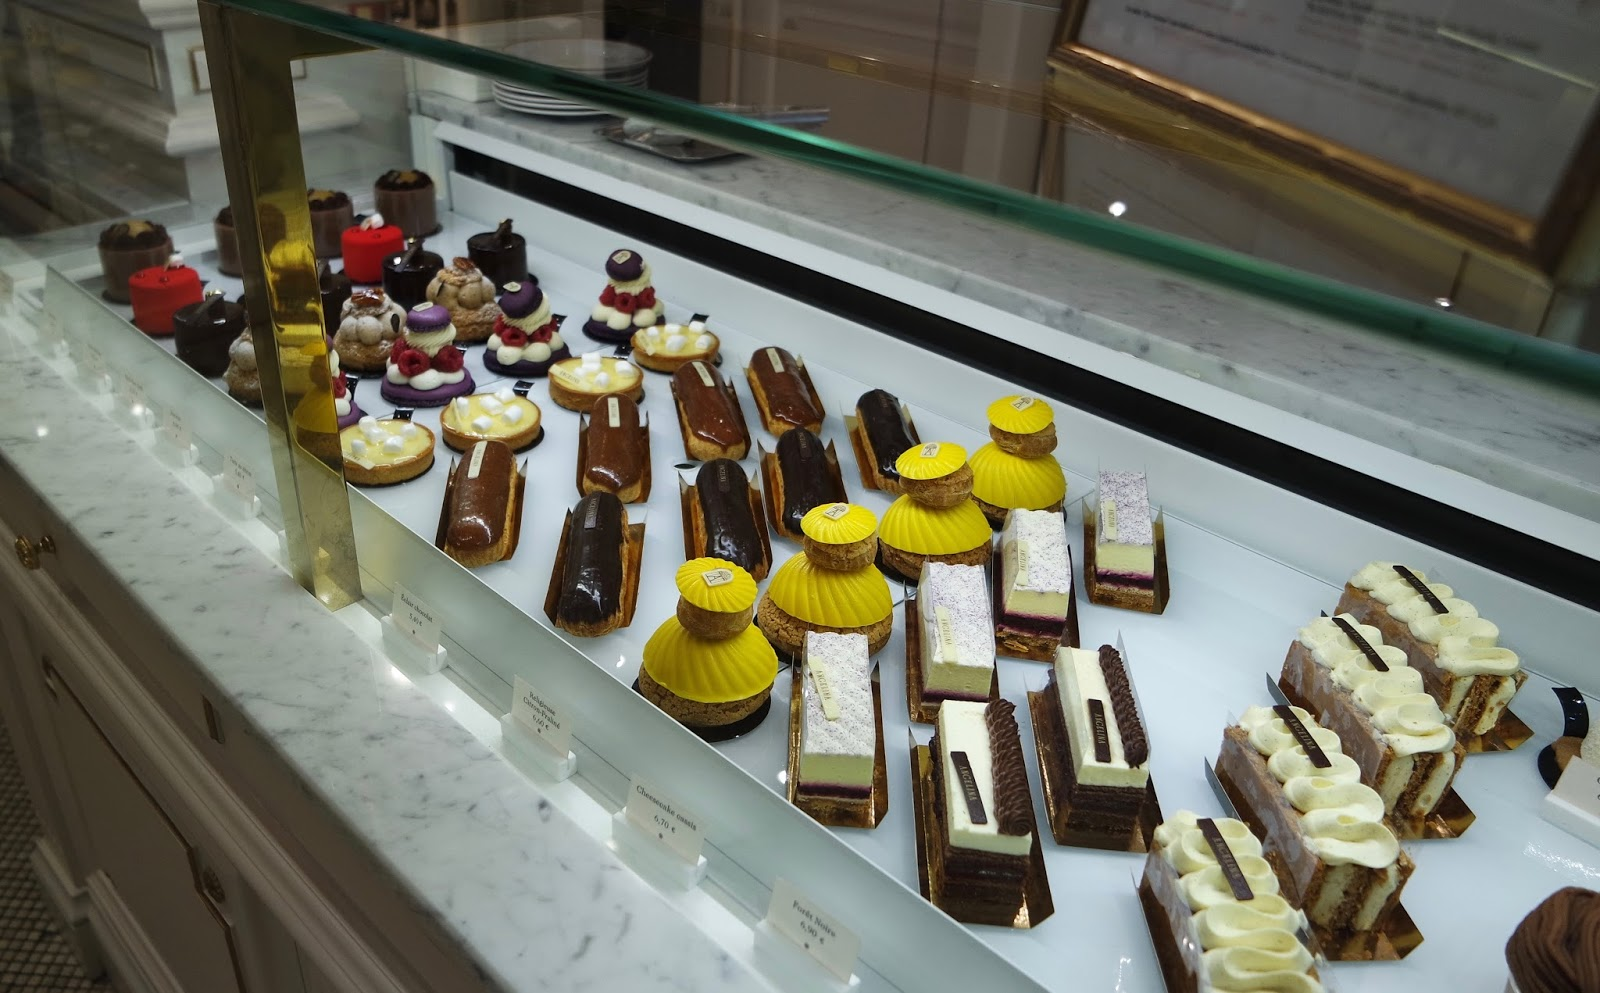 Le Meilleur Being Fancy At Angelina Gingerbread Smiles Ce Mois Ci